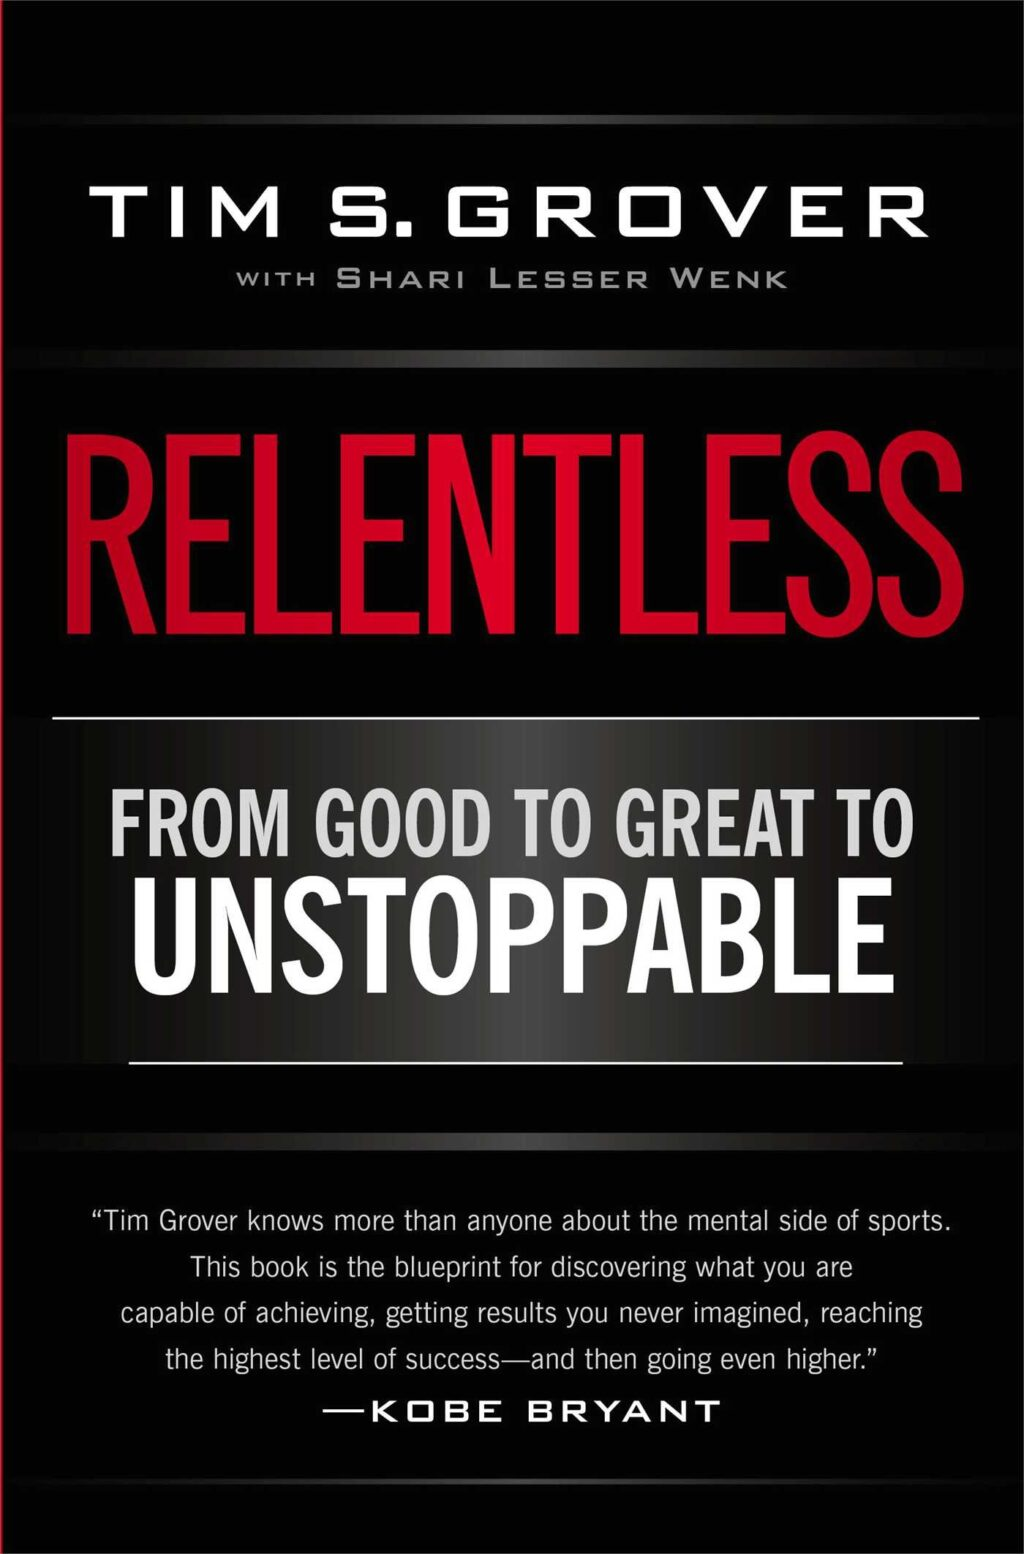 relentless-from-good-to-great-to-unstoppable